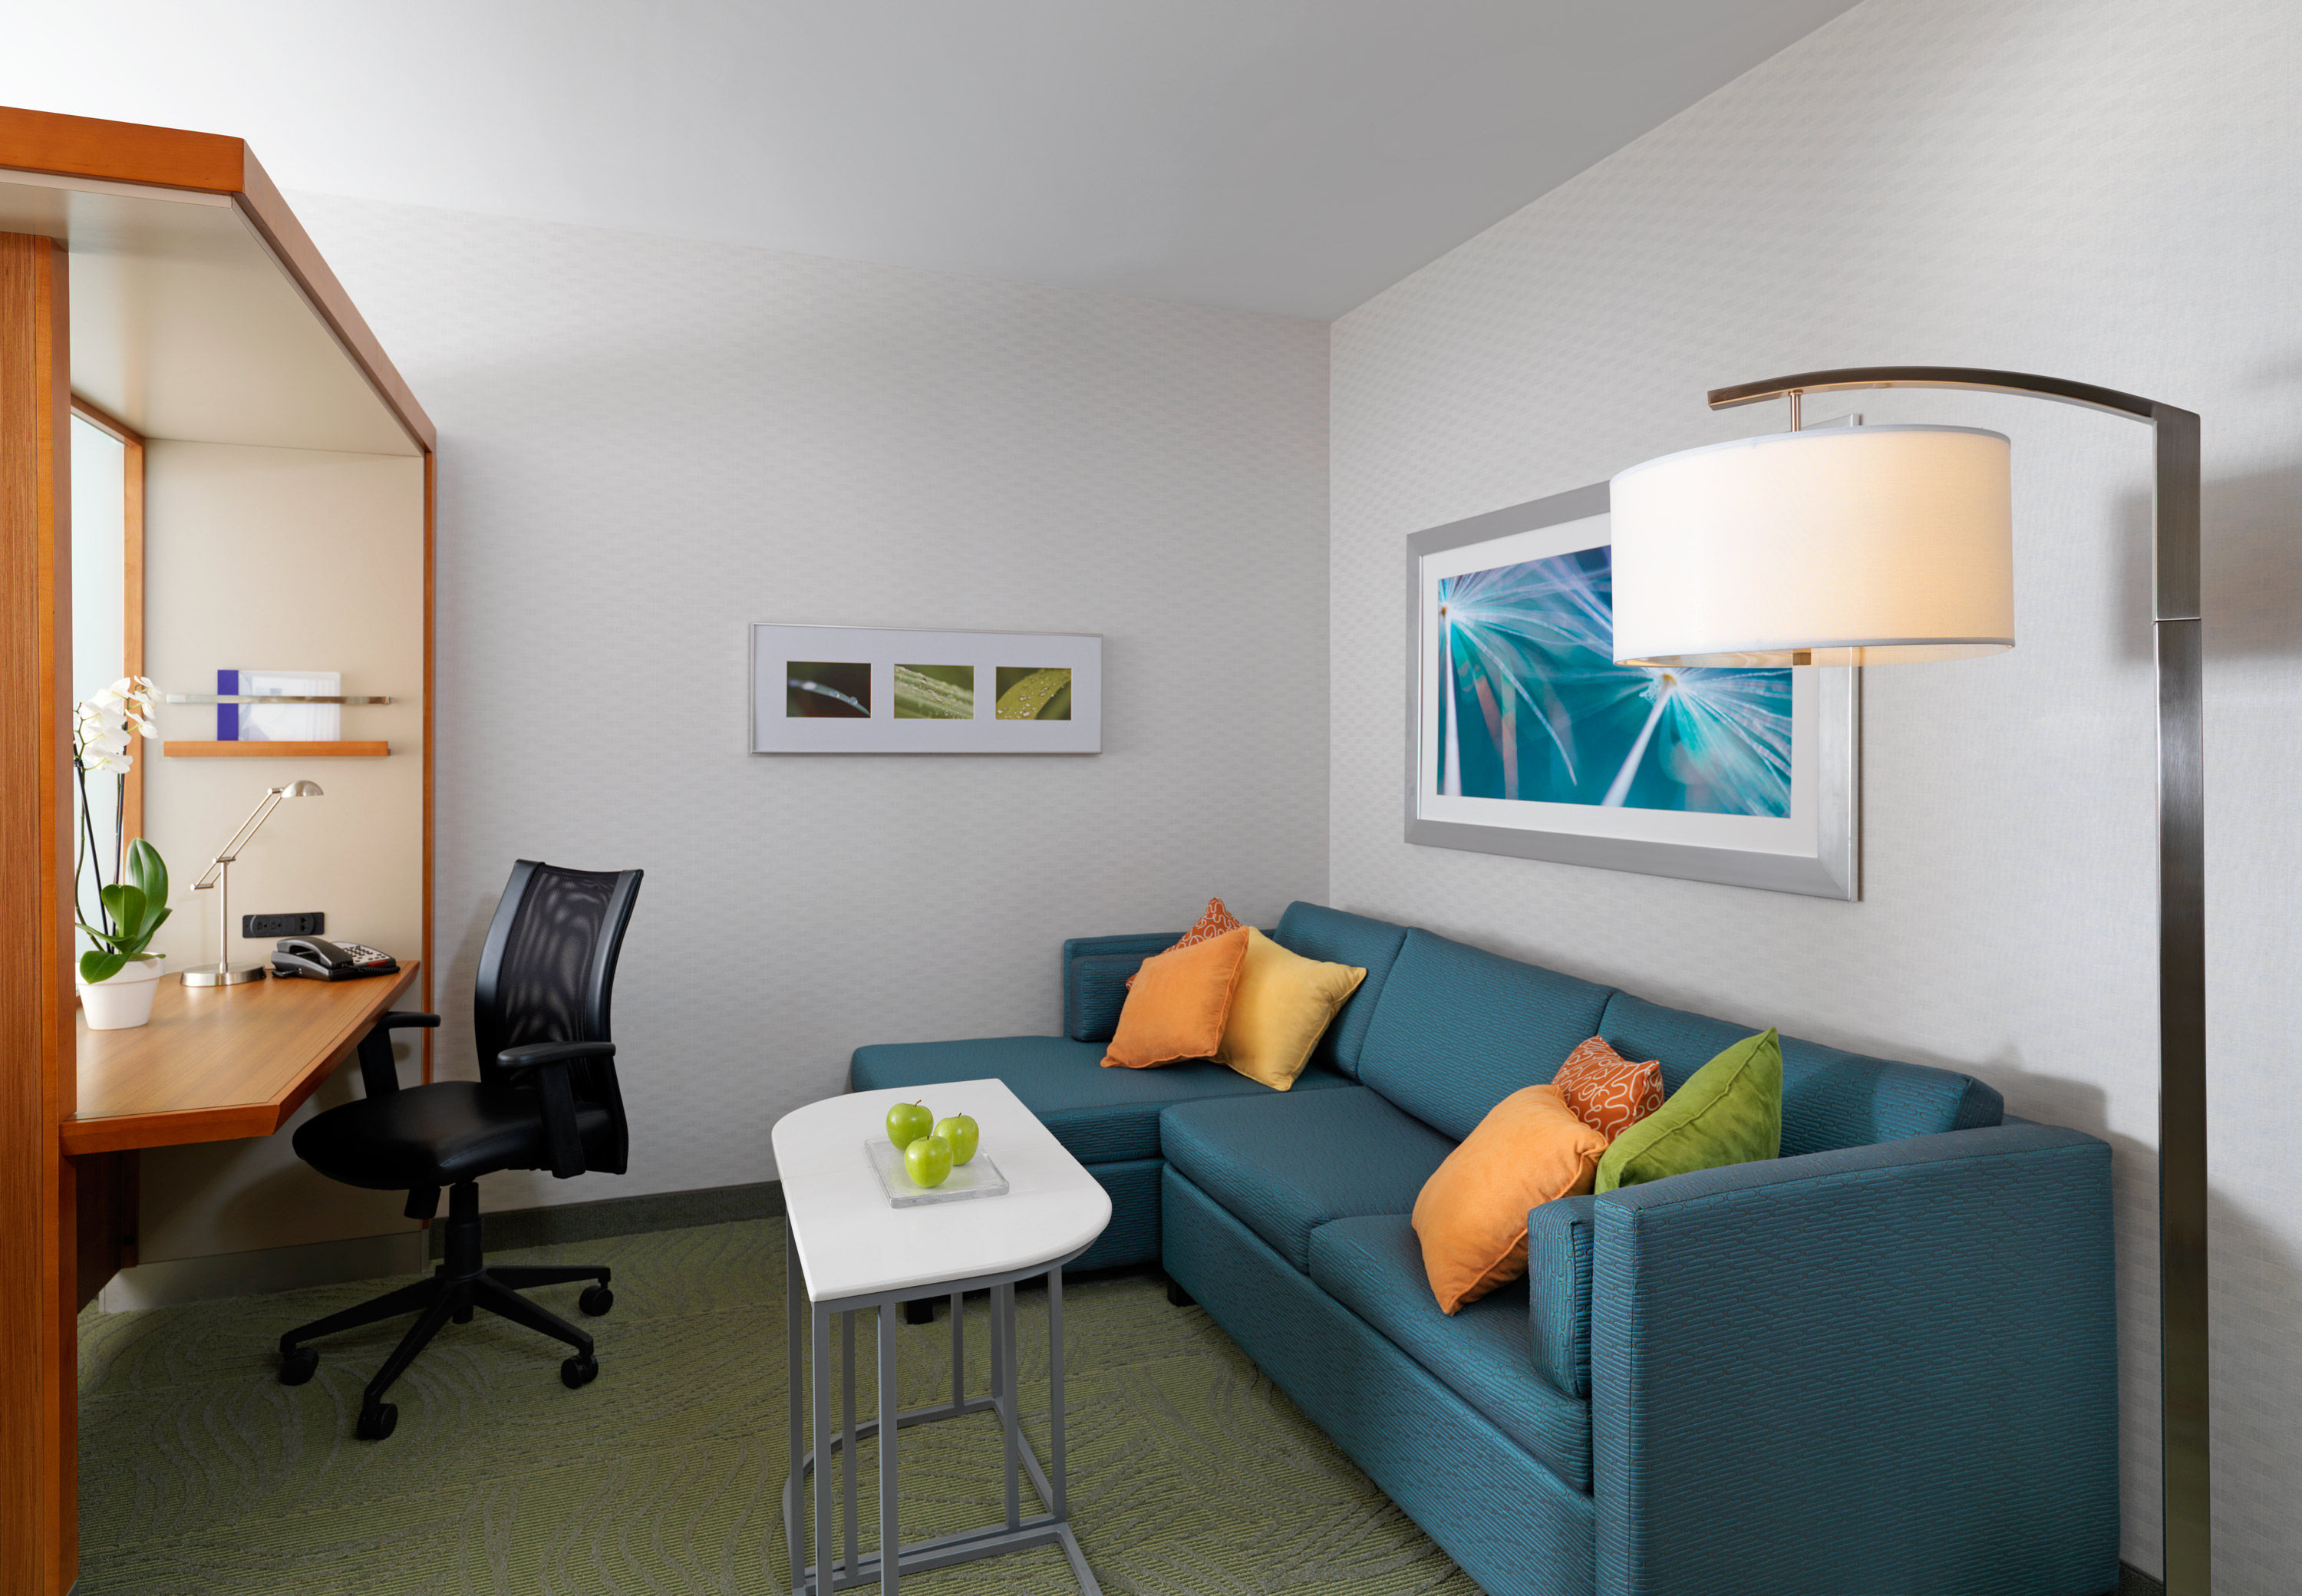 SpringHill Suites by Marriott Buffalo Airport image 12